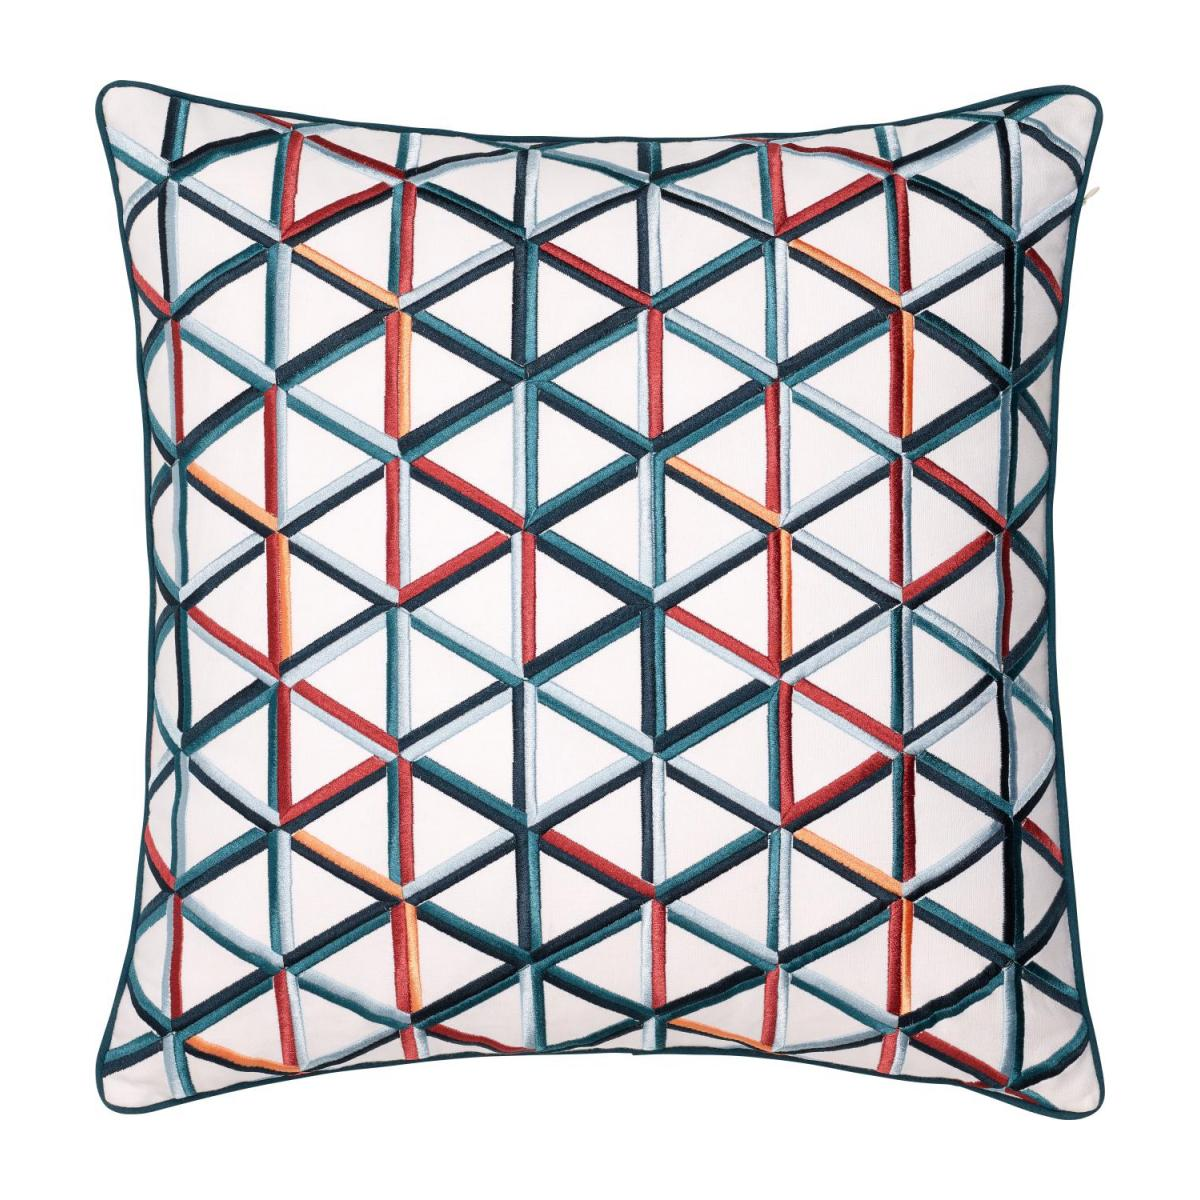 Kissen, 45 x 45 cm, bunt - Design by Floriane Jacques n°1